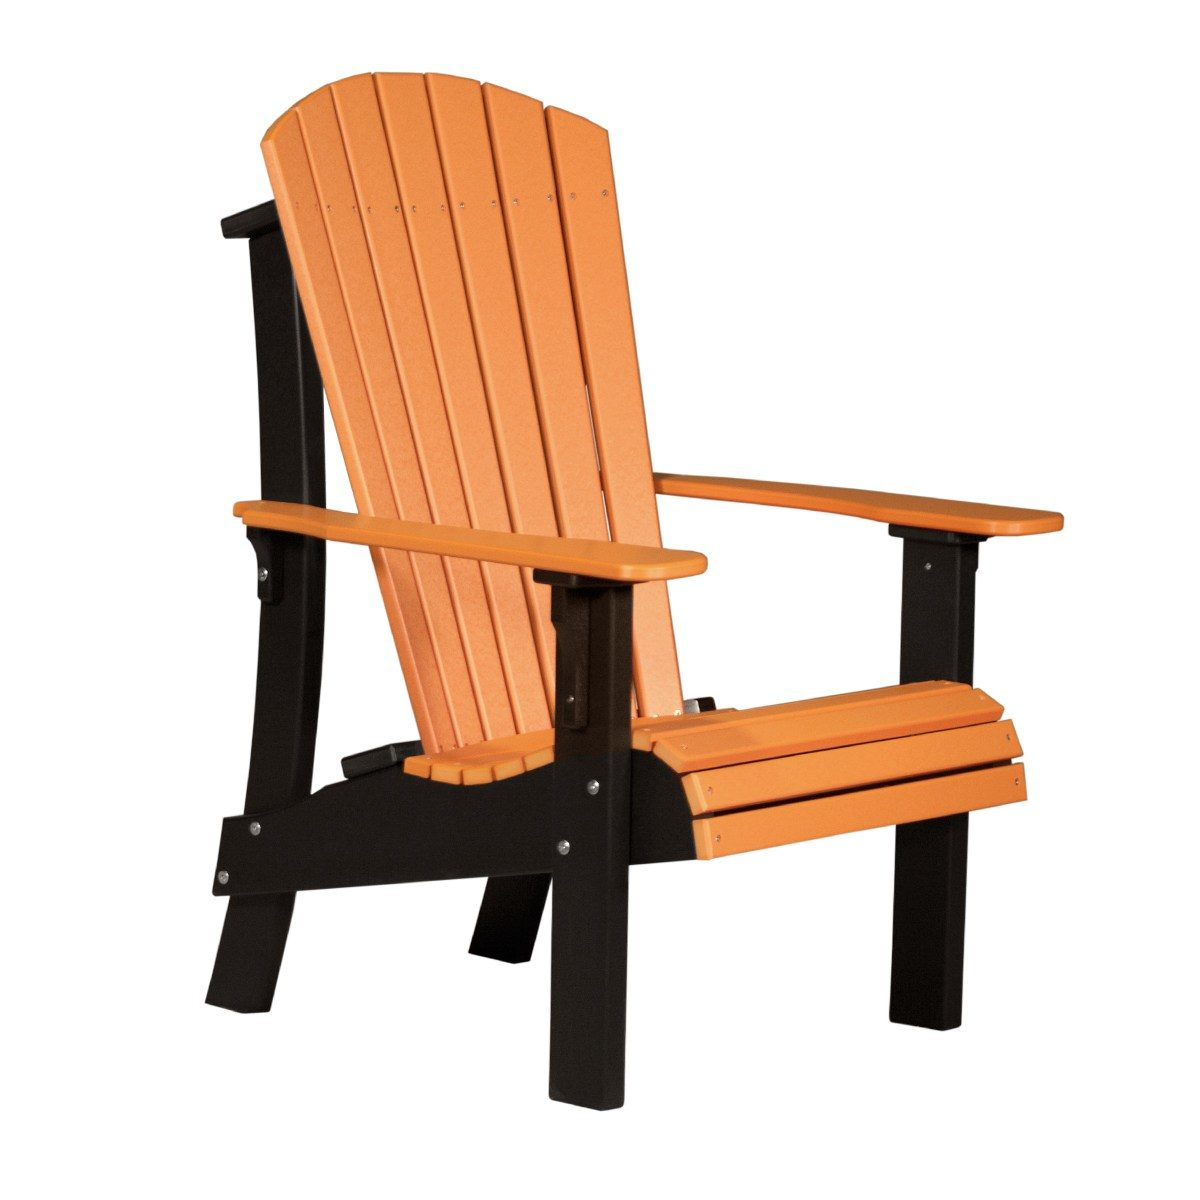 Lifetime Adirondack Chairs Royal Adirondack Chair